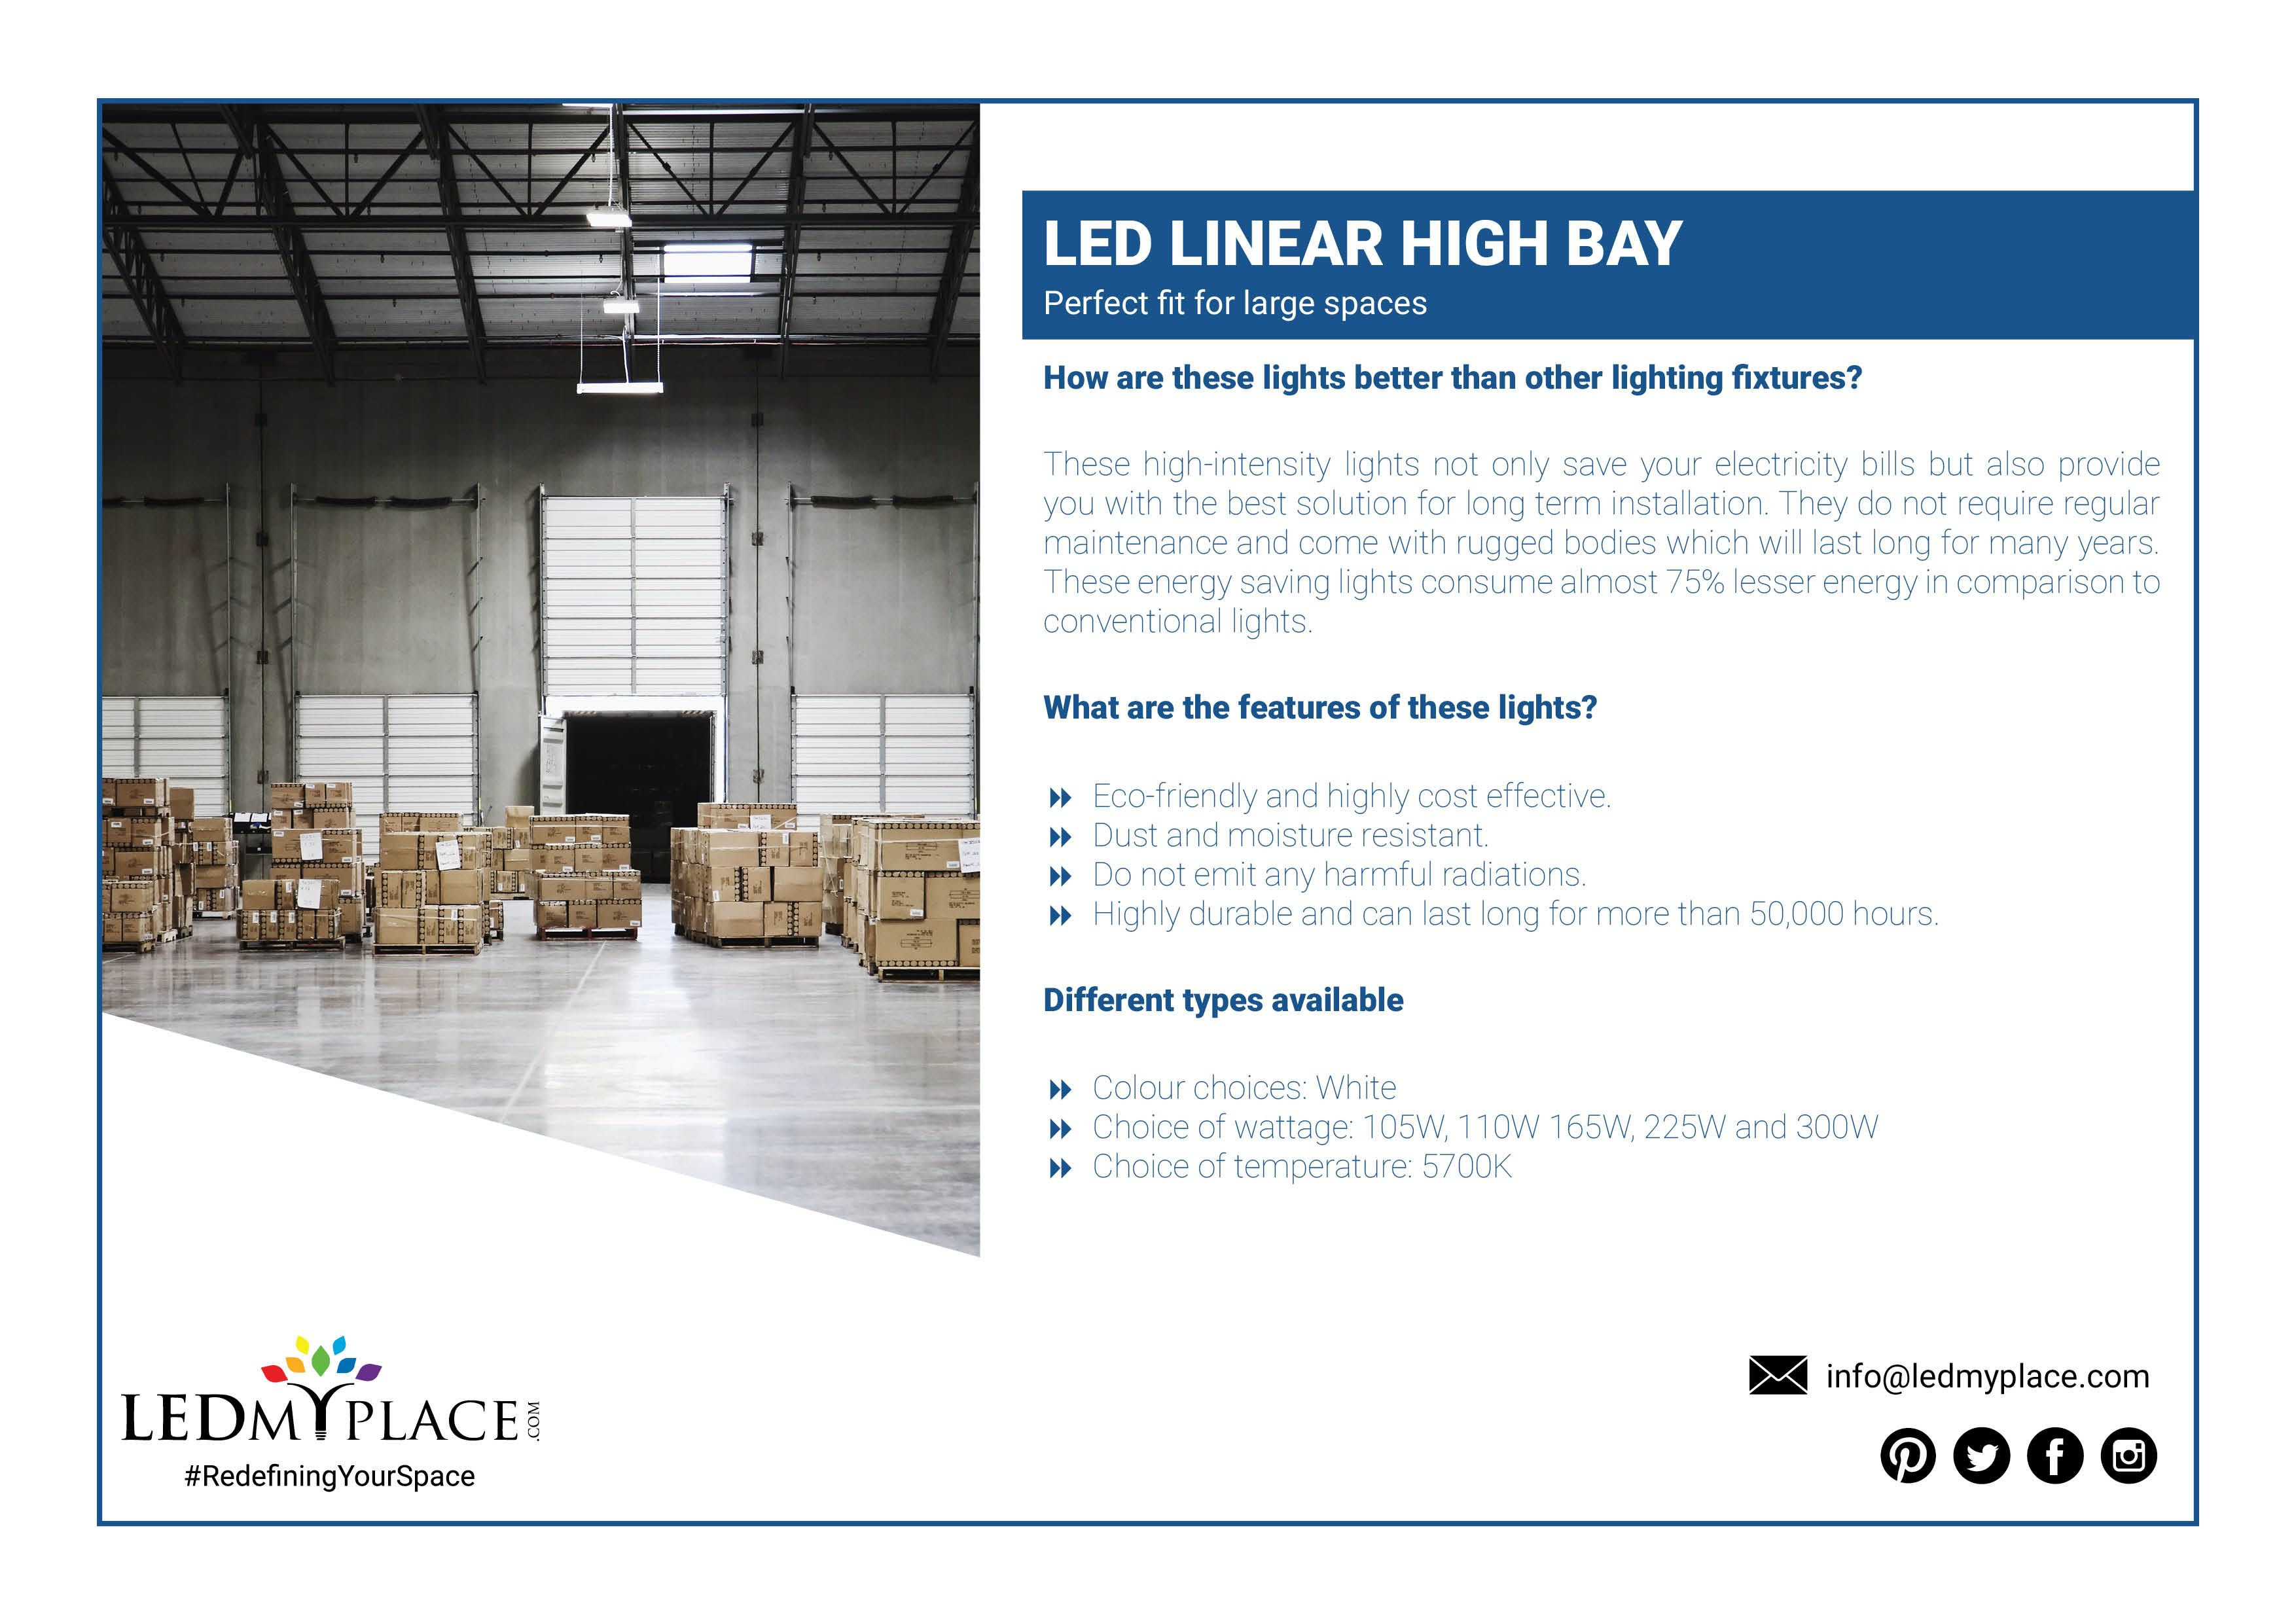 Led Linear High Bay Fixture Perfect Fit For Large Spaces High Bay Lighting High Bay Led Lighting Light Well